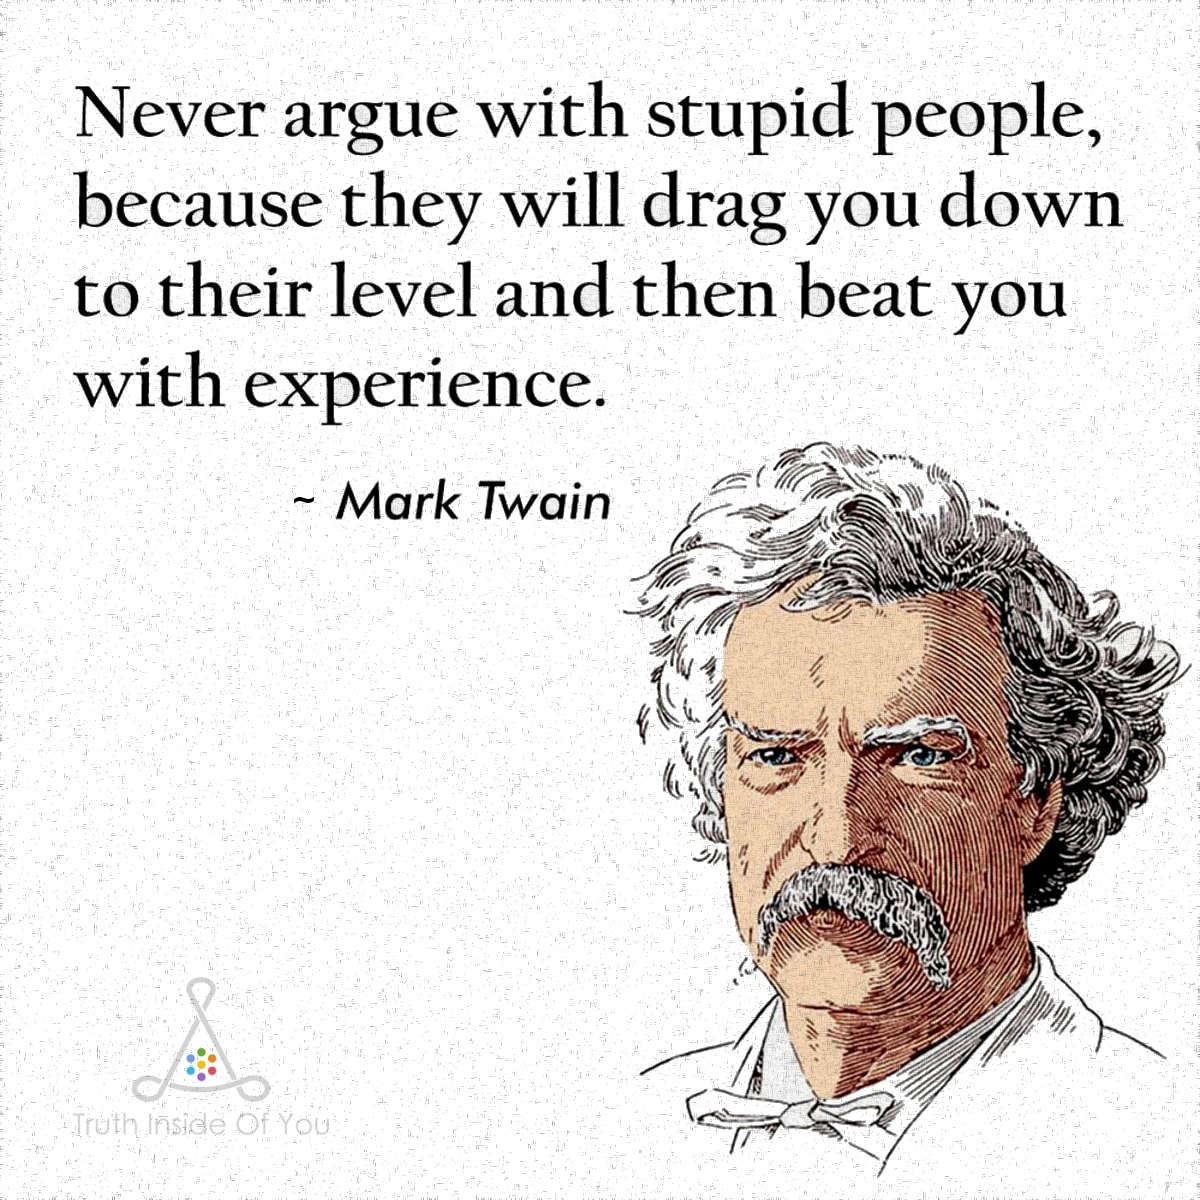 Never Argue With Stupid People. ~ Mark Twain